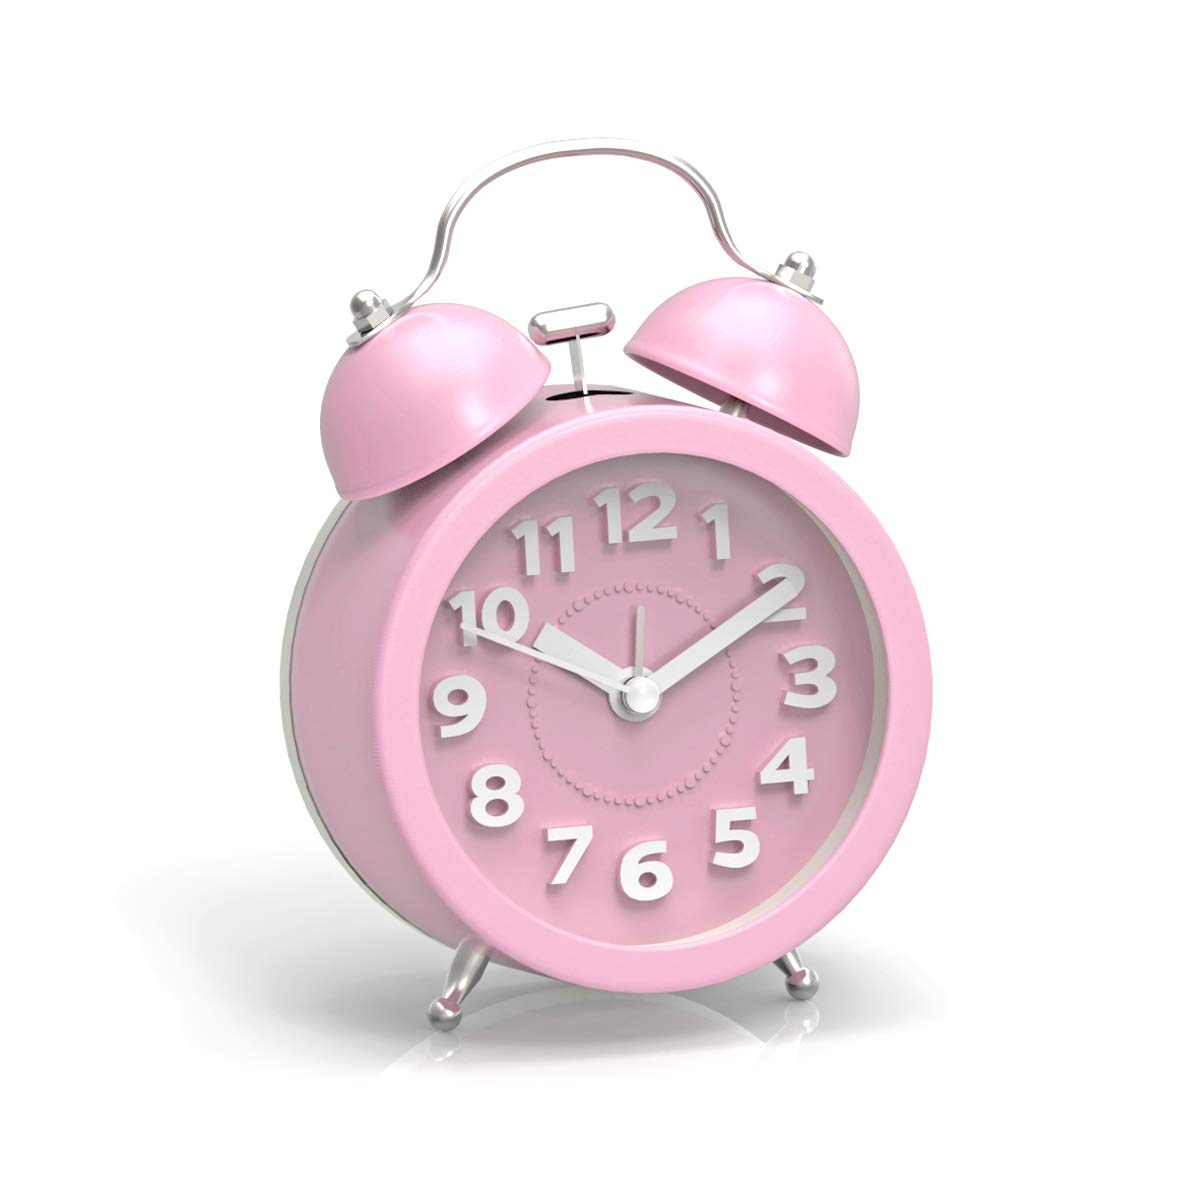 """PiLife 3"""" Mini Non-ticking Vintage ClassicAnalog Alarm Clock with Backlight , Battery Operated Travel Clock, Loud Twin Bell Alarm Clock for Kids(Pink)"""